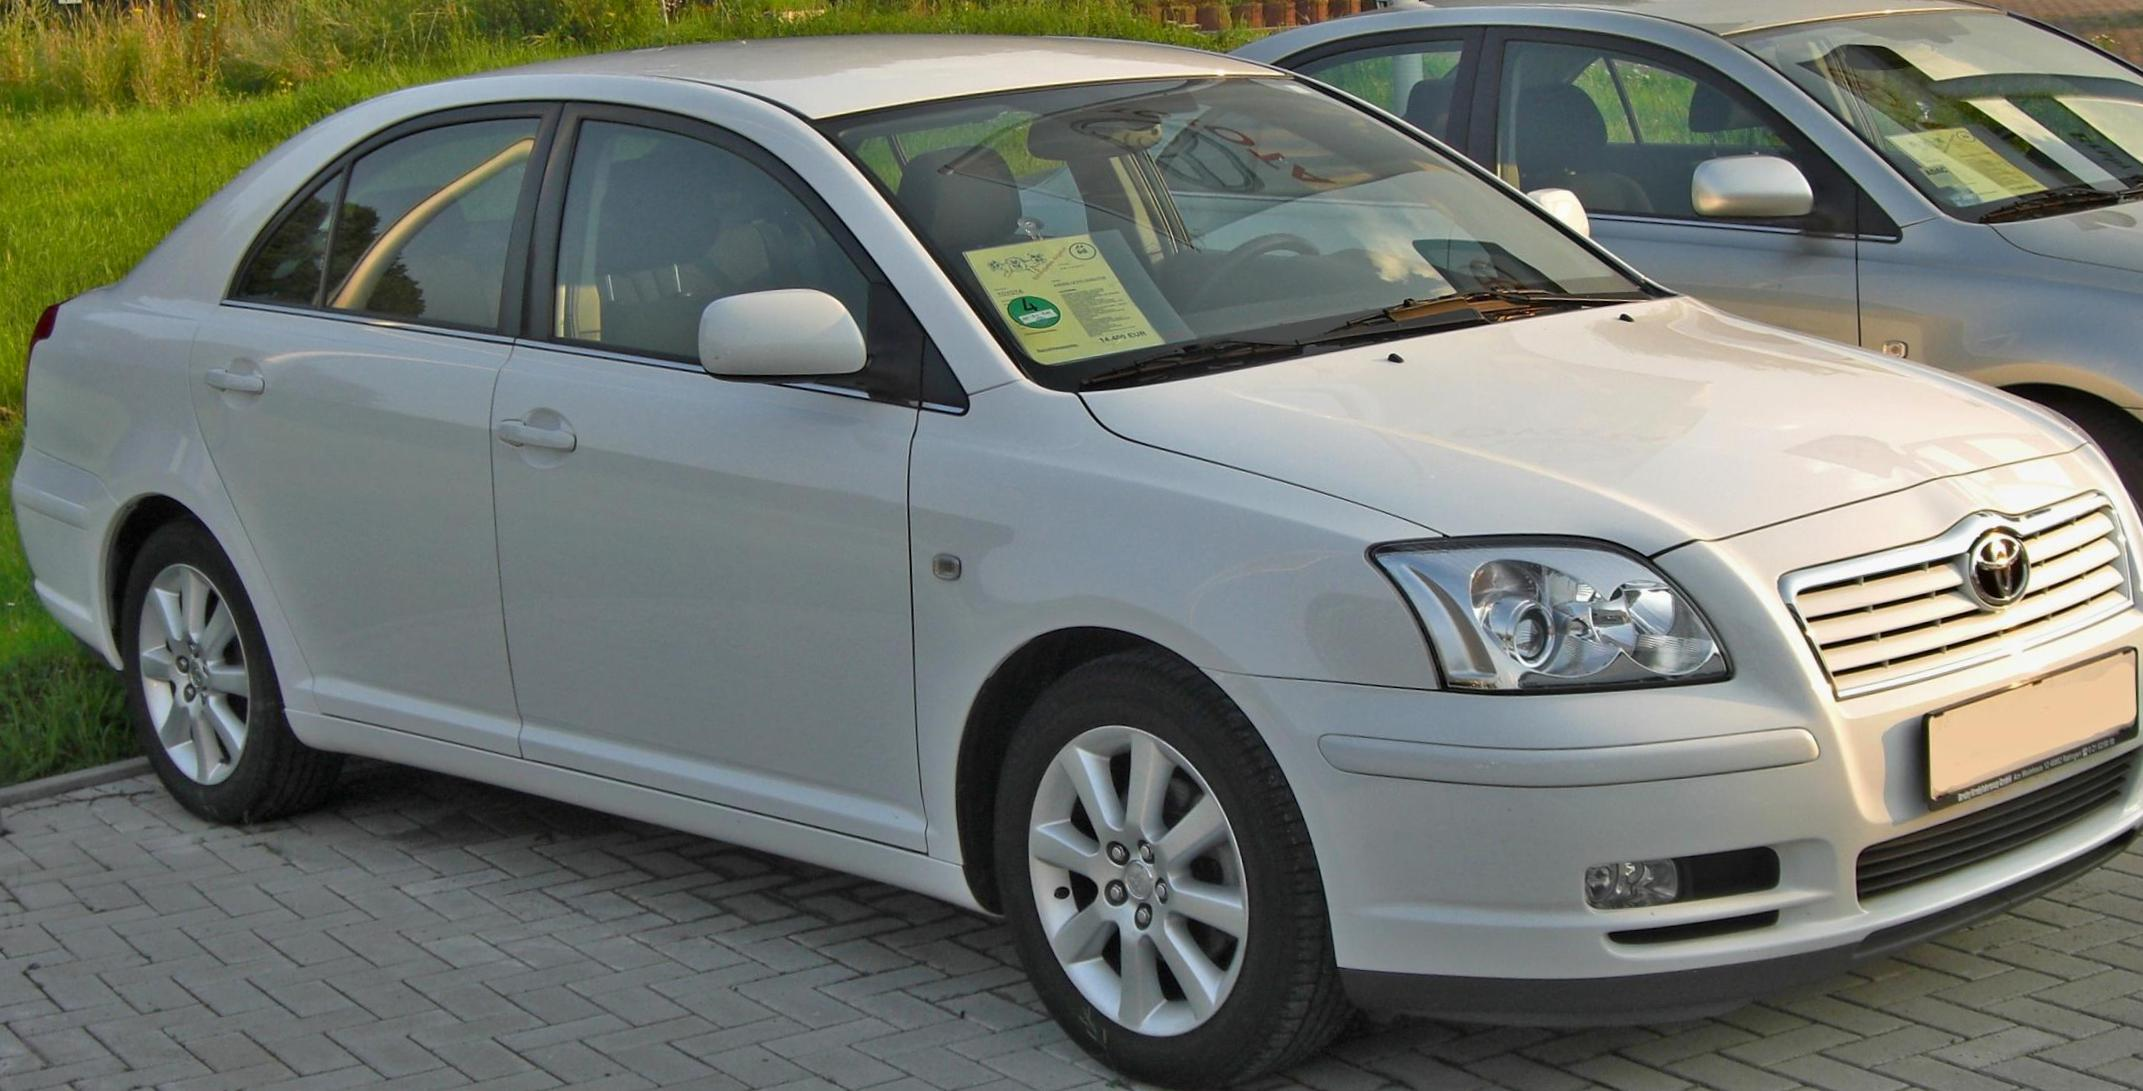 Toyota Avensis approved 2005